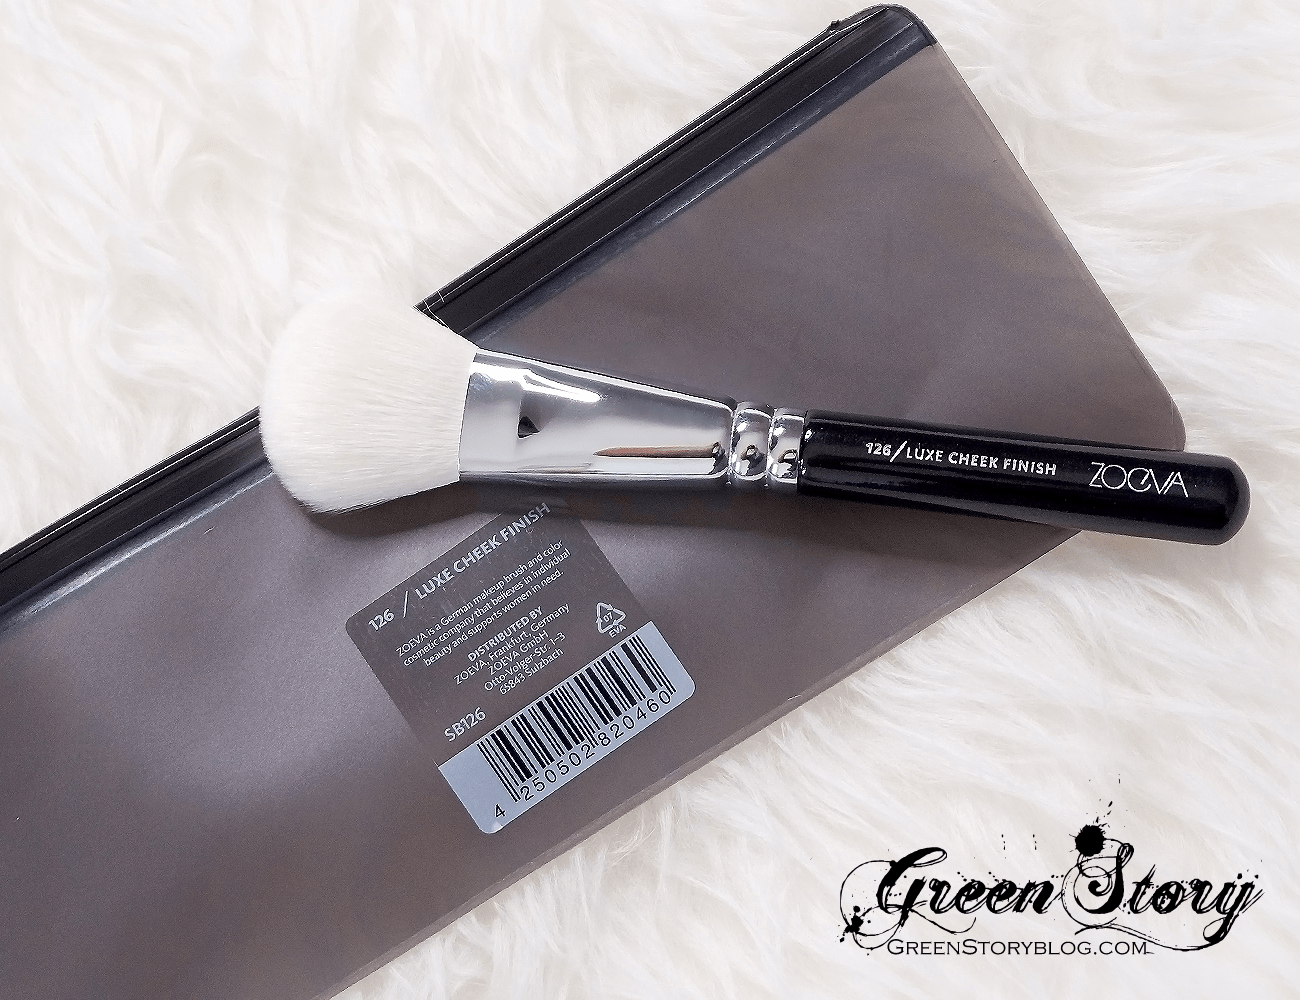 126 Luxe Cheek Finish Face makeup brush